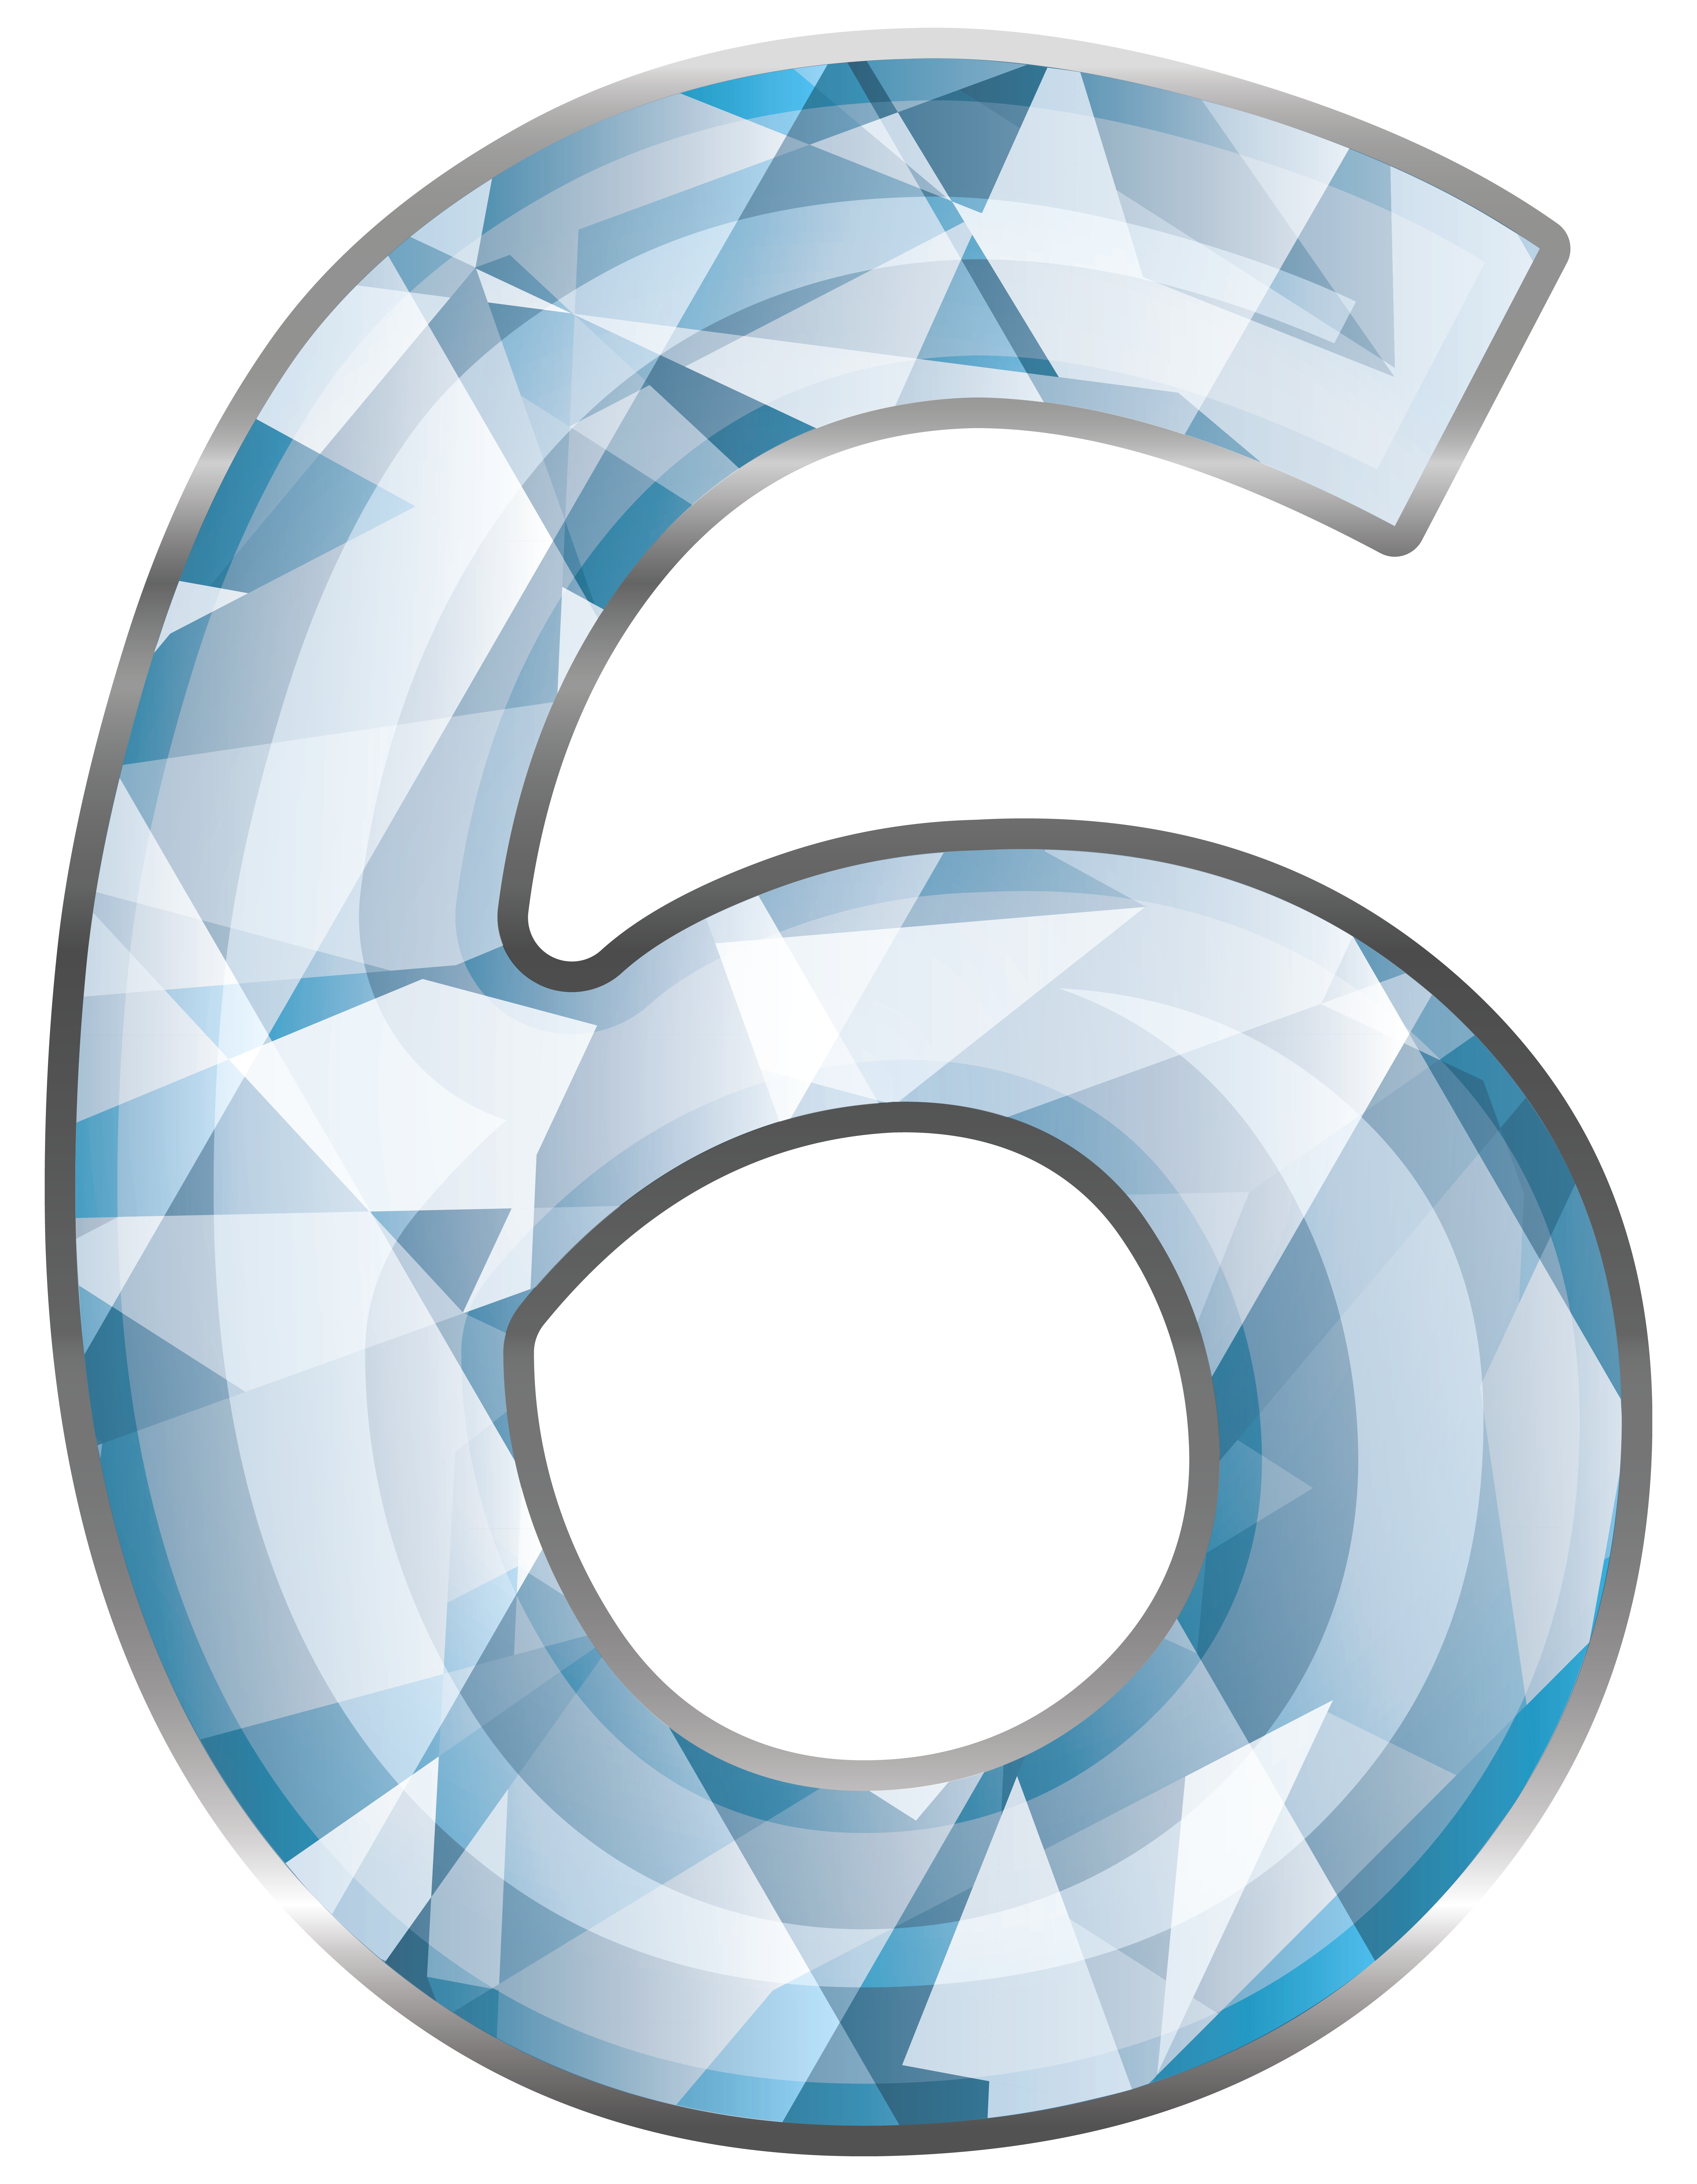 Ice clipart six. Crystal number png image